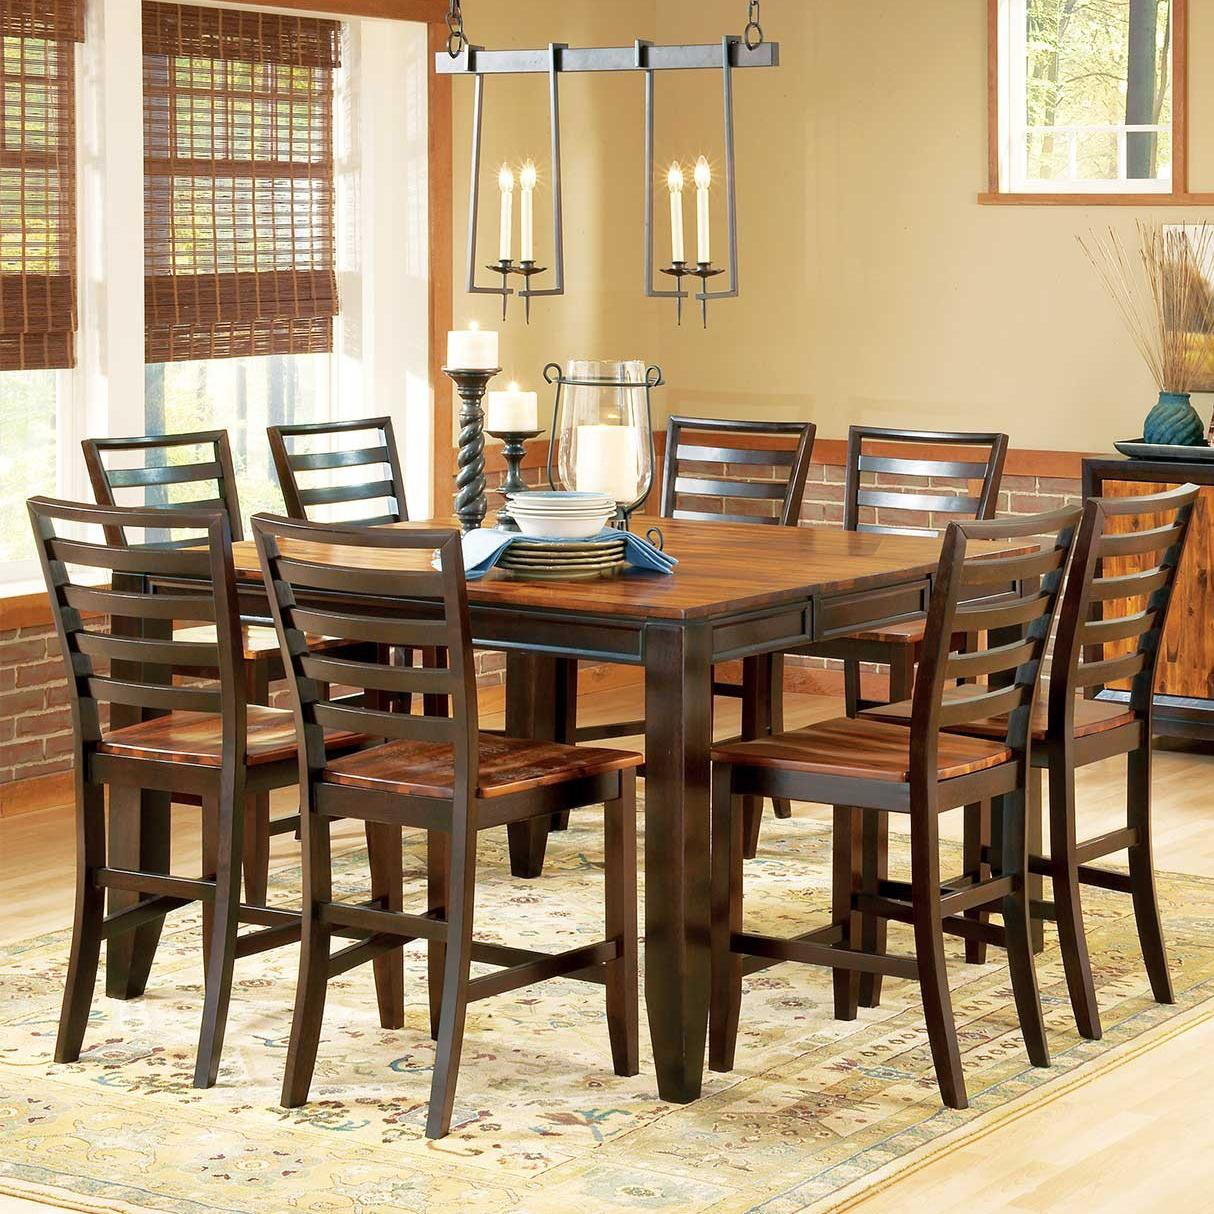 Abaco 9-Piece Gathering Table Set by Steve Silver at O'Dunk & O'Bright Furniture